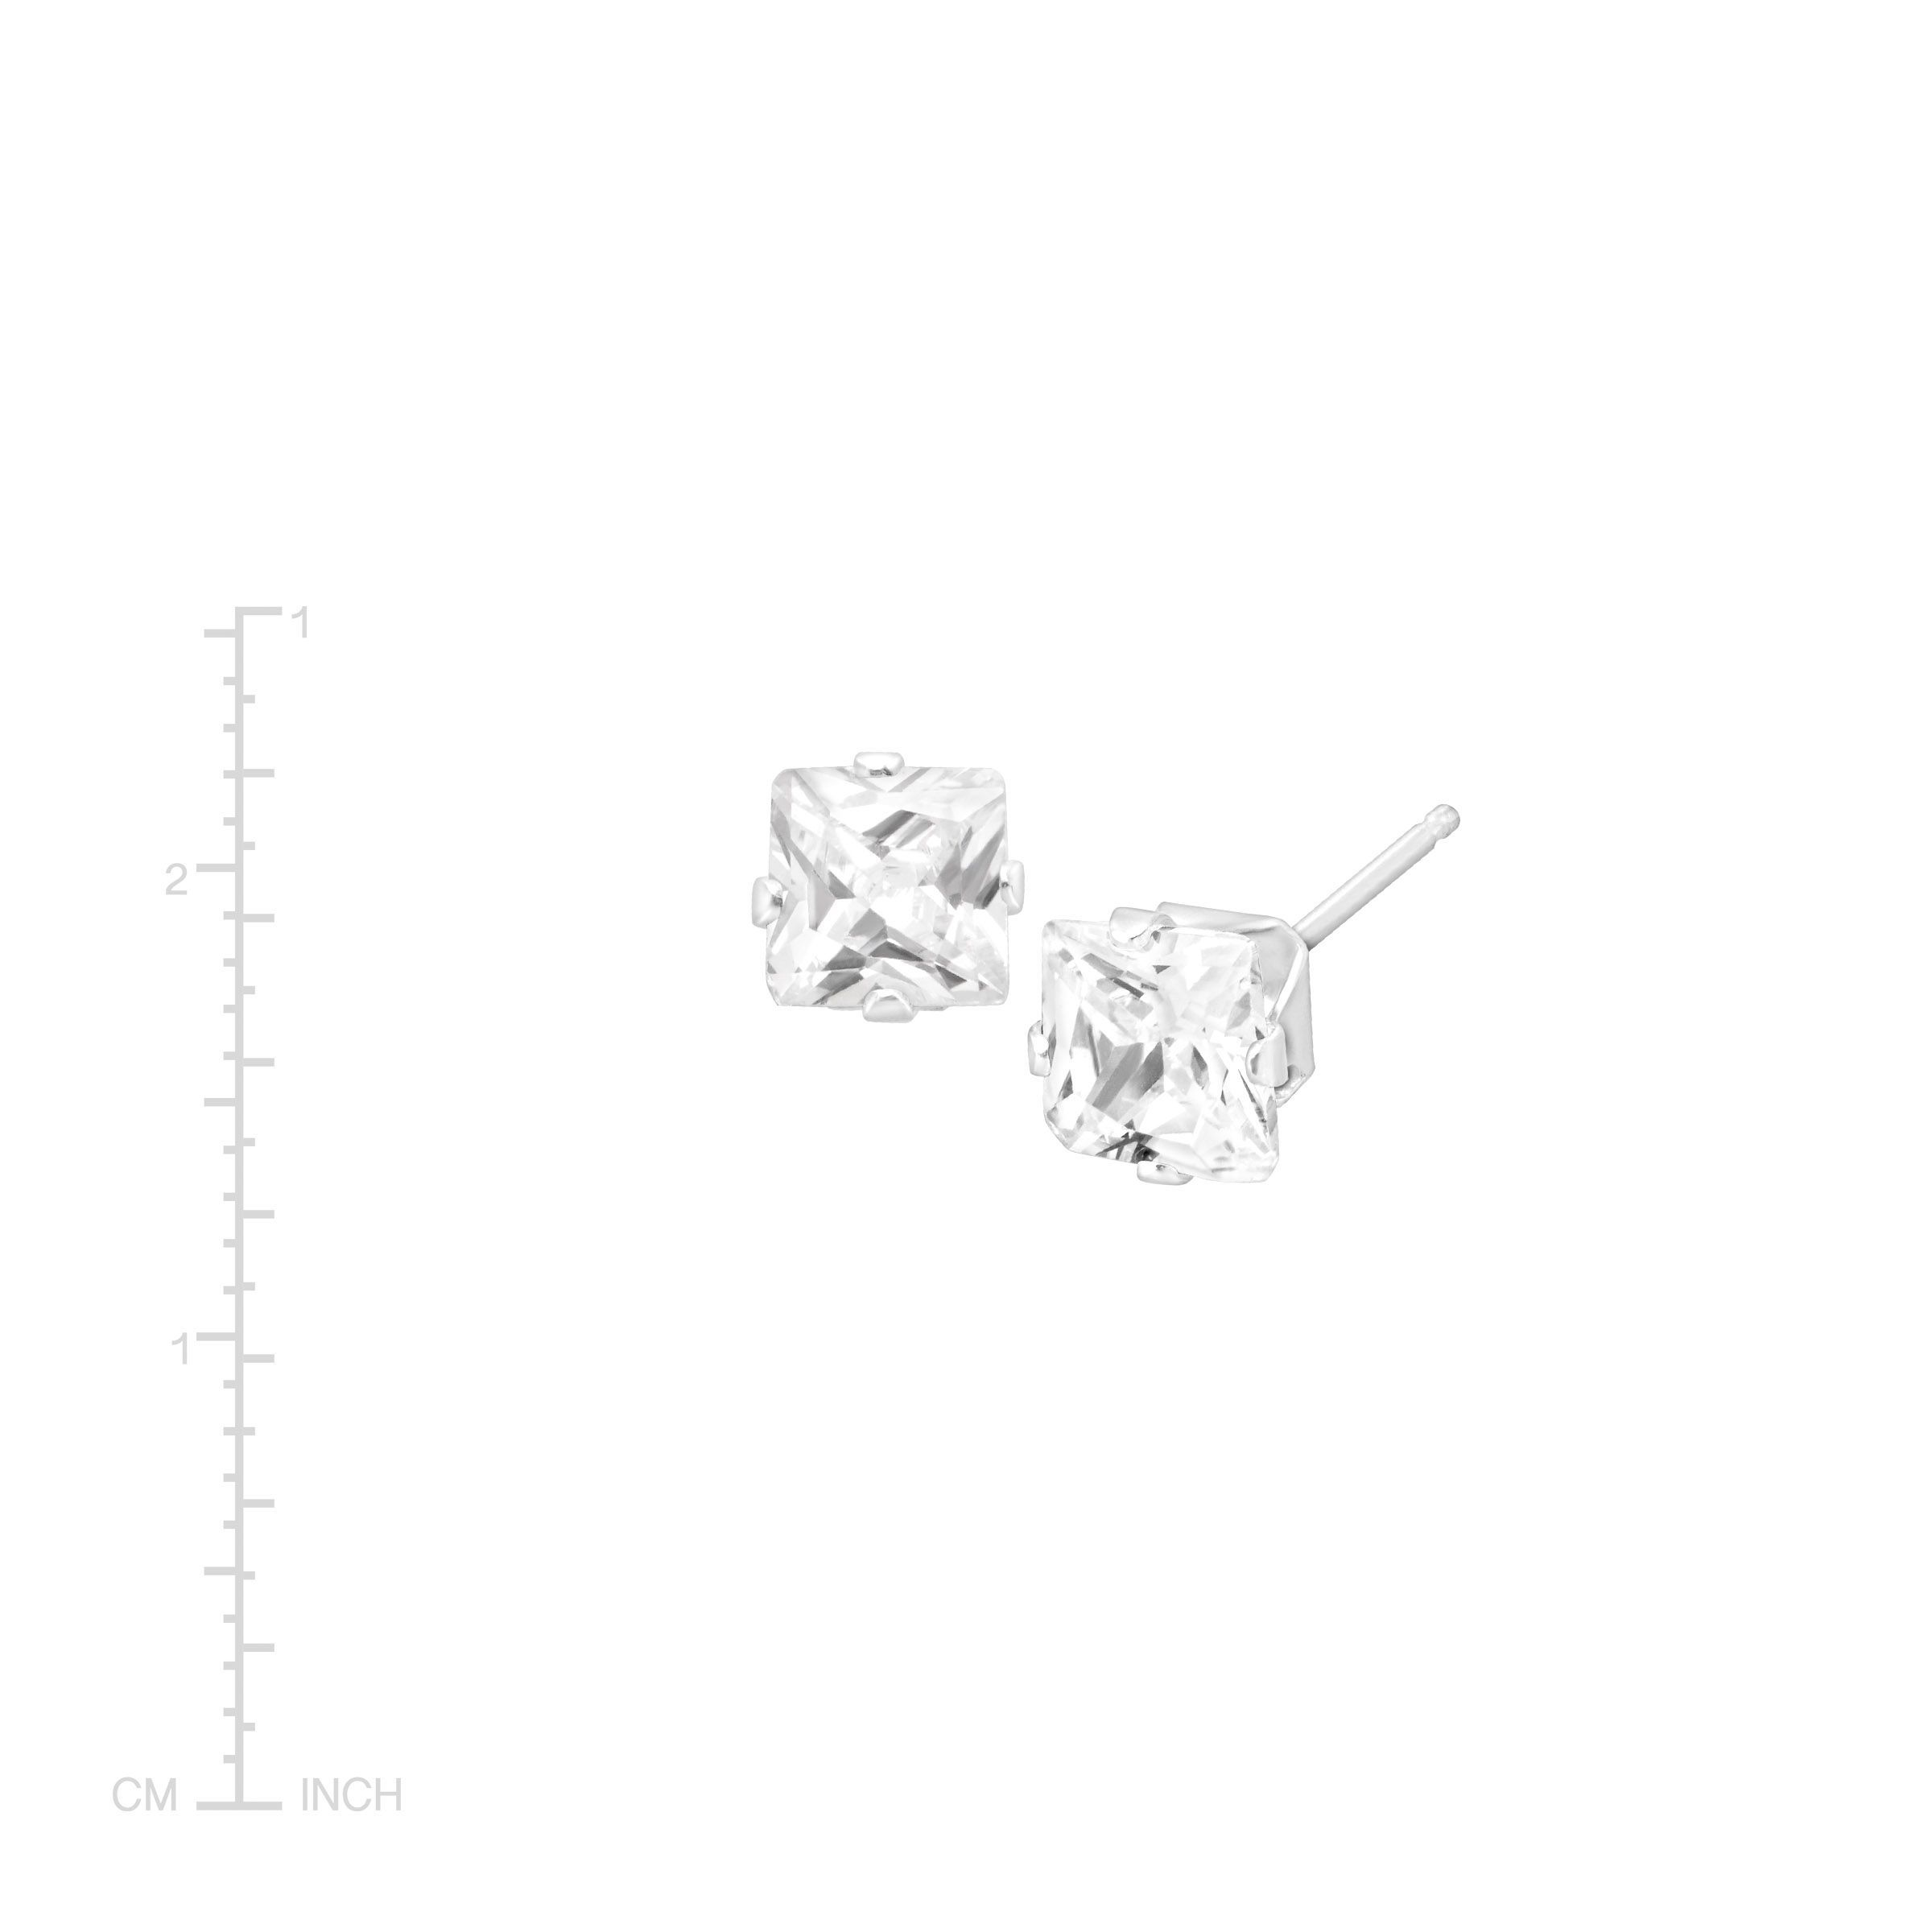 5a9540295 Details about 5x5 mm Cushion-Cut Cubic Zirconia Stud Earrings in 14K White  Gold